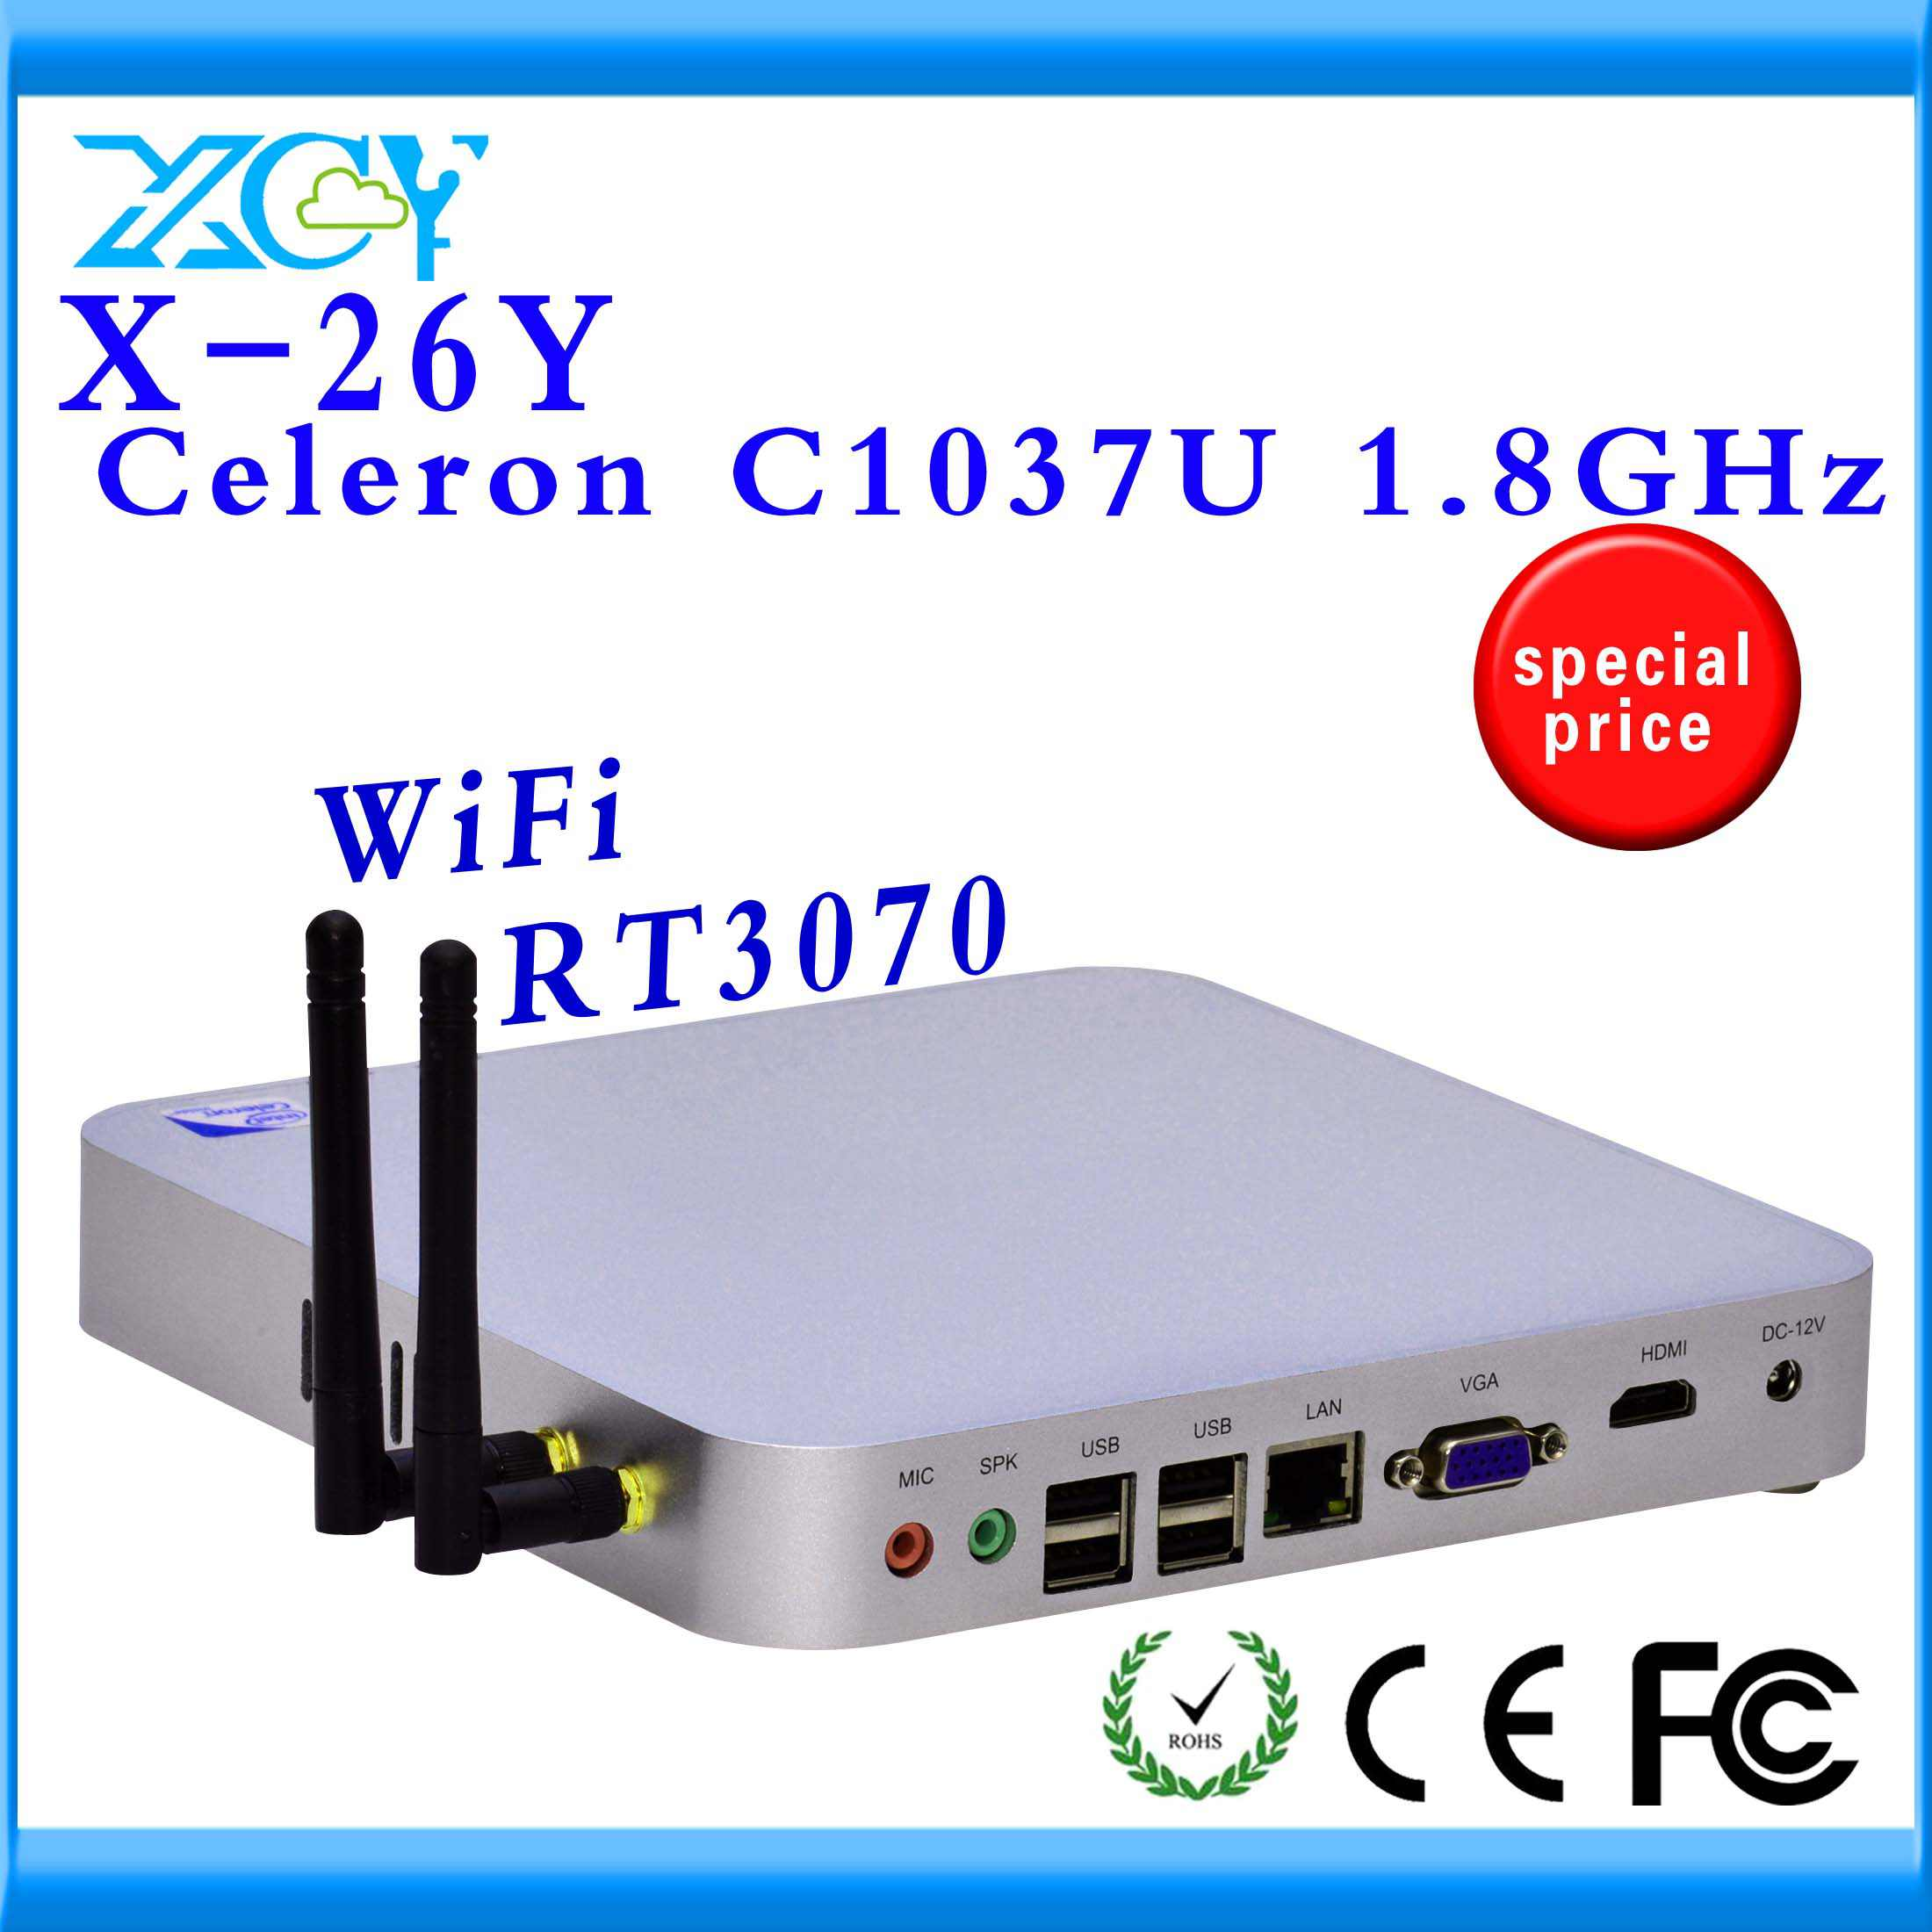 XCY Hot Selling X-26Y C1037U Fanless Computer thin Client support full screen movies,wireless keyboard and touch screen(China (Mainland))